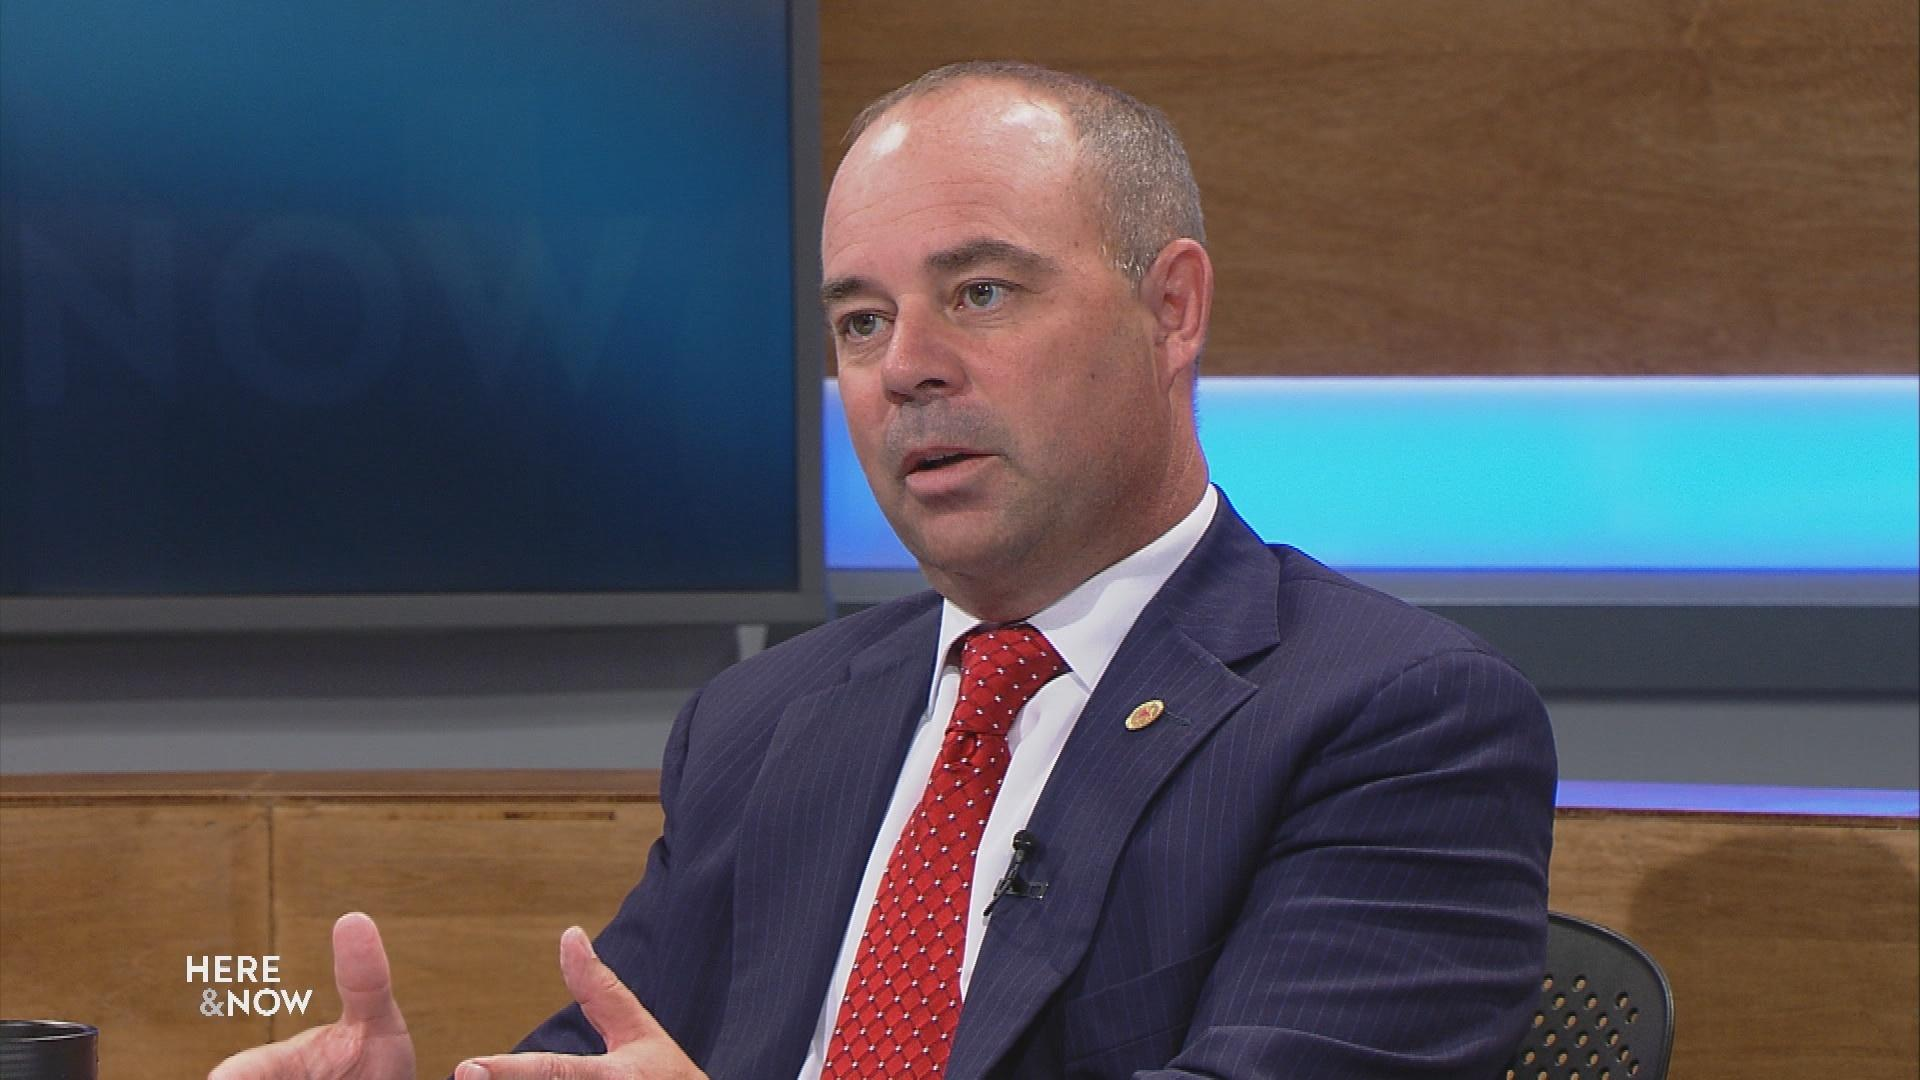 Transportation Sec-Desig. Breaks Down Funding After Flooding